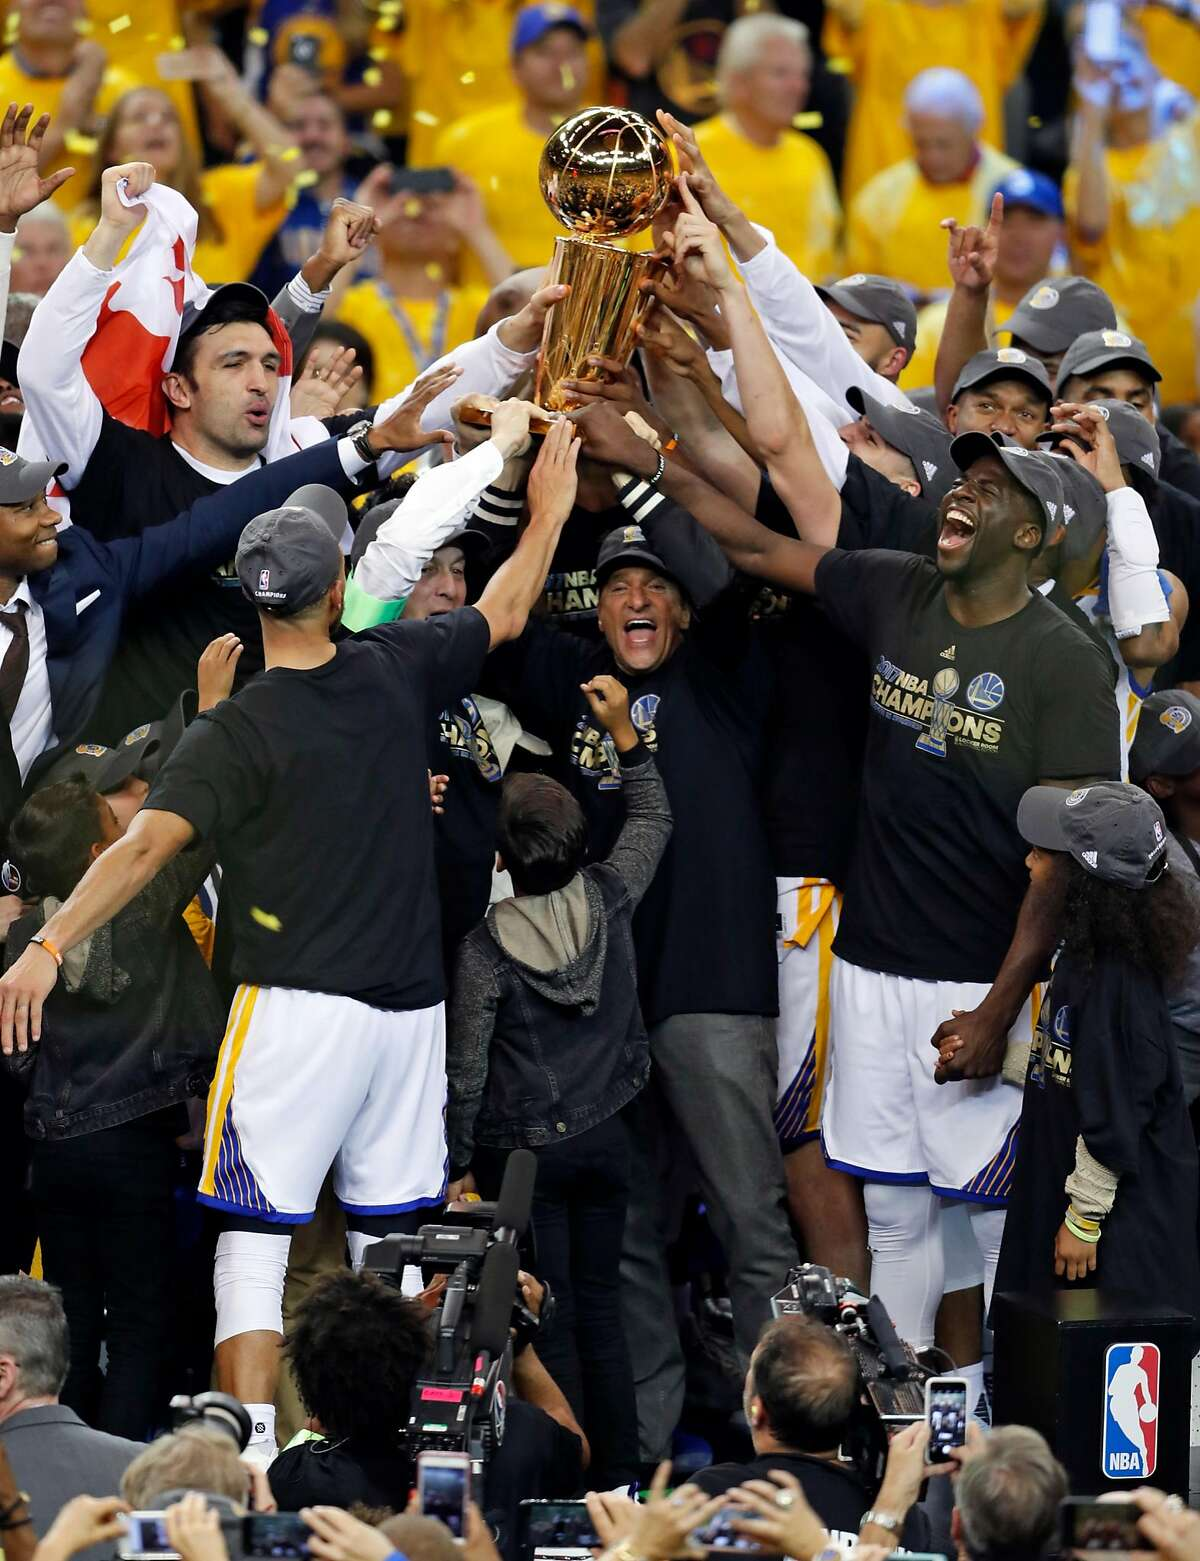 Golden State Warriors co-owner Peter Guber and team celebrate NBA Championship after Warriors'129-120 win over Cleveland Cavaliers in Game 5 of NBA Finals at Oracle Arena in Oakland on Monday, June 12, 2017. Warriors Coach Steve Kerr told ESPN's Ramona Shelburne on Thursday that a visit to the White House still is on the table.